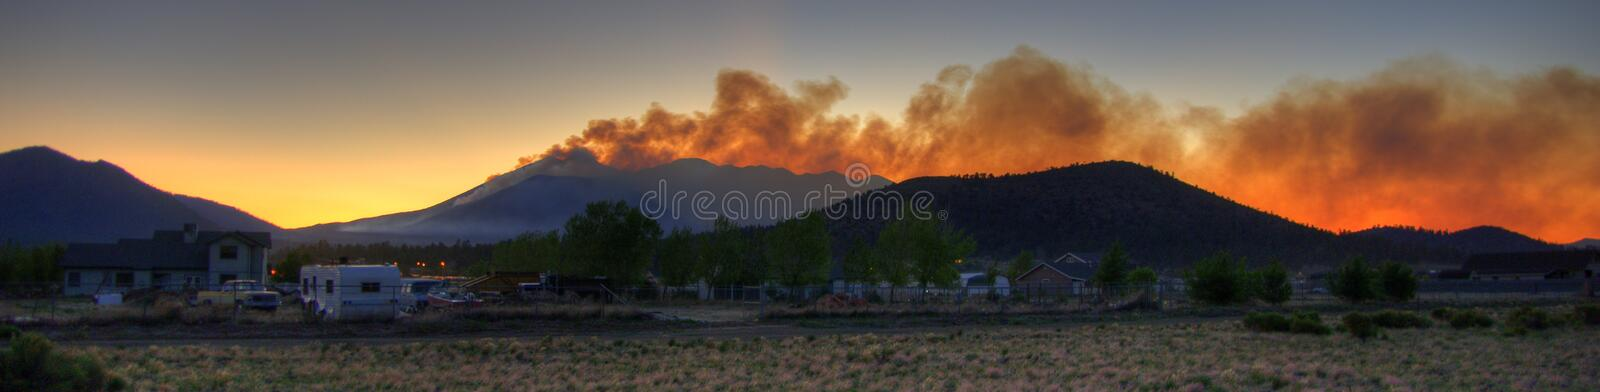 Schultz Fire royalty free stock image